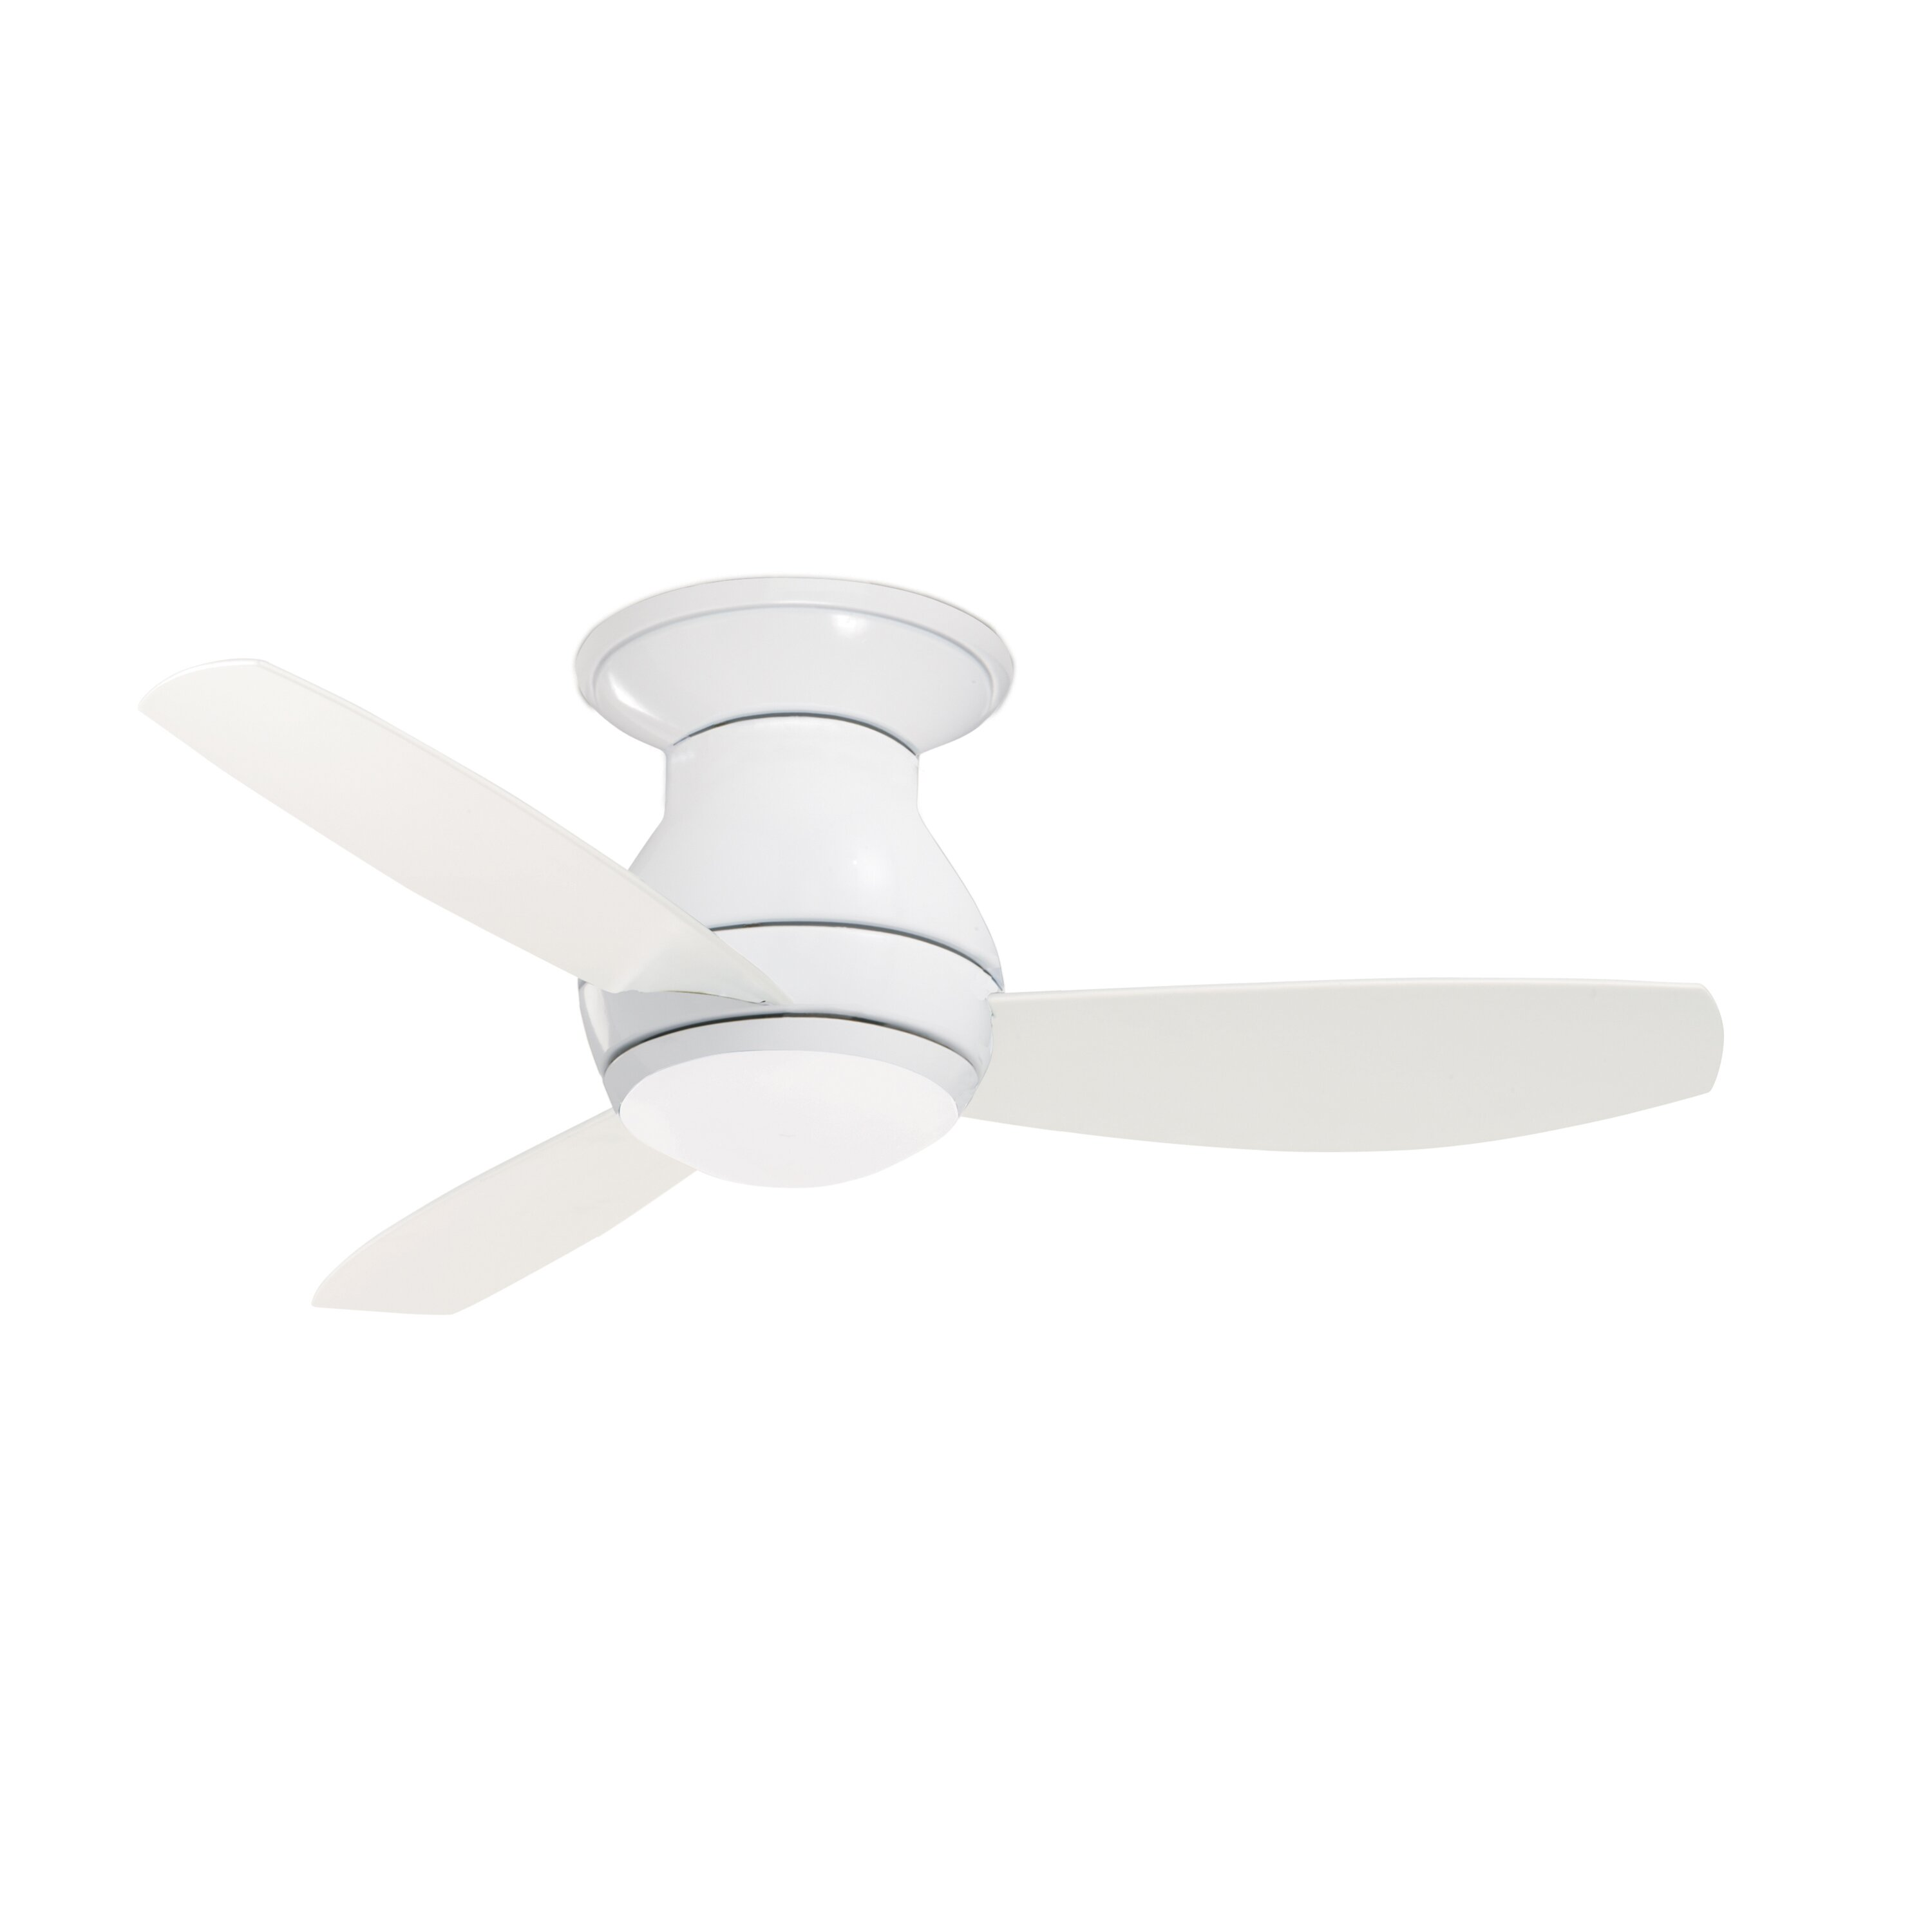 Emerson Curva Ceiling Fan Fans 44 Sky 3 Blade With Remote